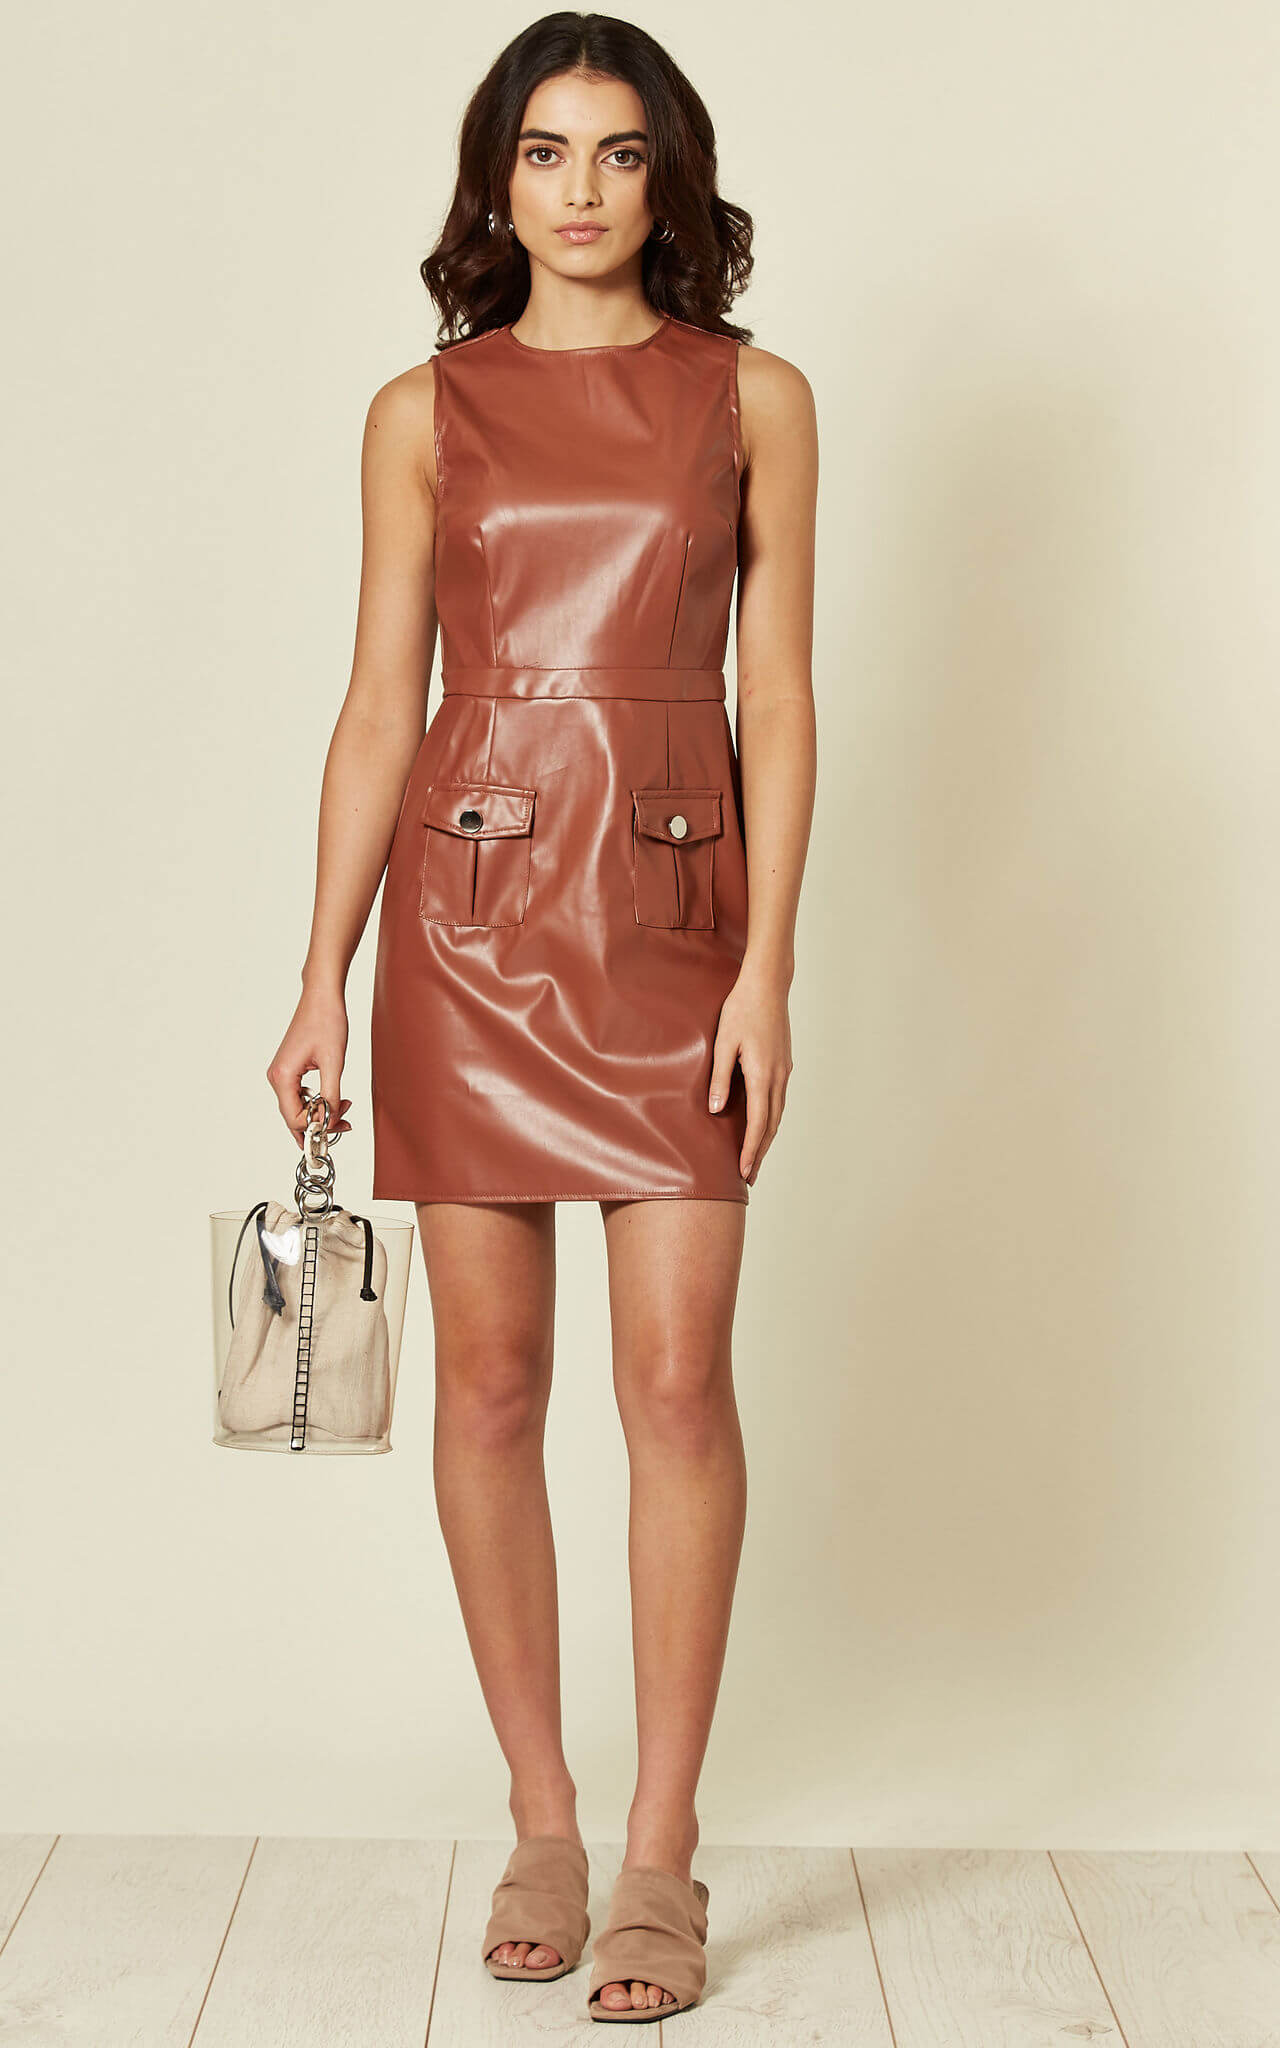 Model wears a faux leather brown bodycon dress with pockets and sleeveless